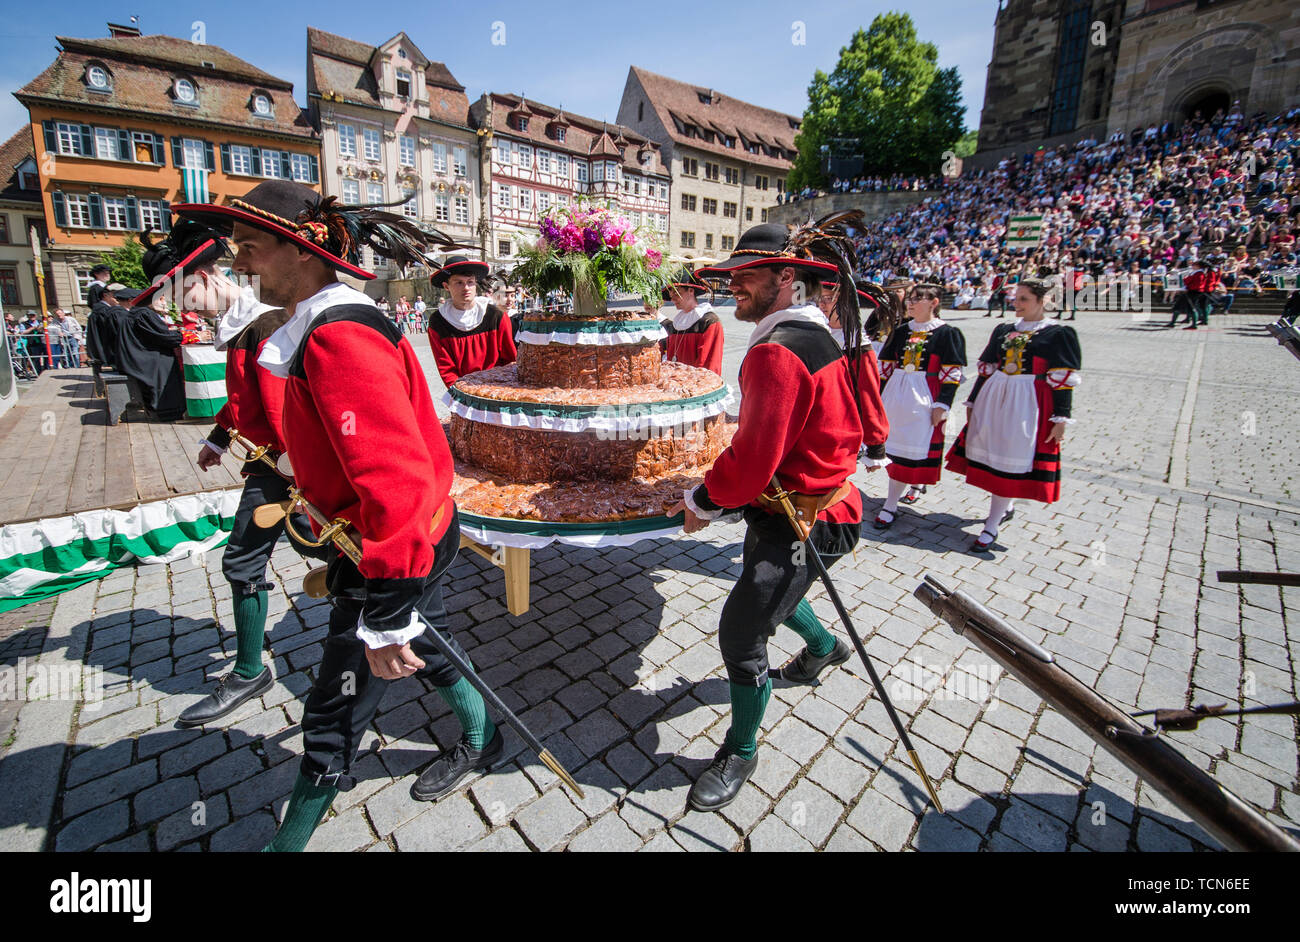 09 June 2019, Baden-Wuerttemberg, Schwäbisch Hall: Members of the association 'Großer Siedershof' carry the gigantic Siederskuchen to the town hall at the cake and fountain festival on the market square. The festival with more than 500 actors and helpers offers a mixture of medieval customs and music. Photo: Christoph Schmidt/dpa - Stock Image